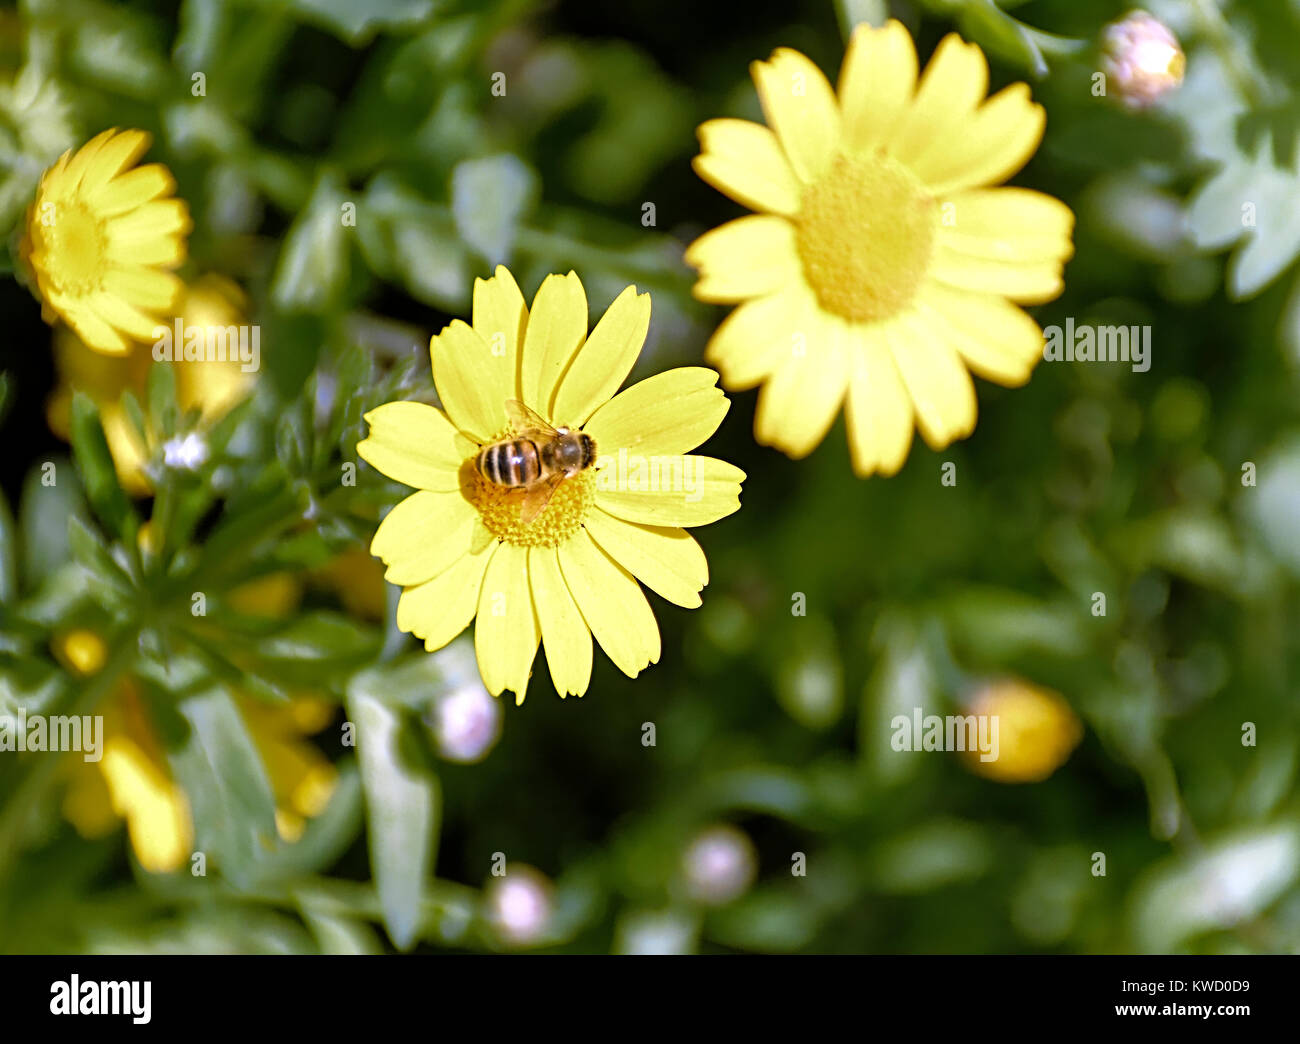 Yellow flower called calendula arvensis with bee on pistils stock yellow flower called calendula arvensis with bee on pistils mightylinksfo